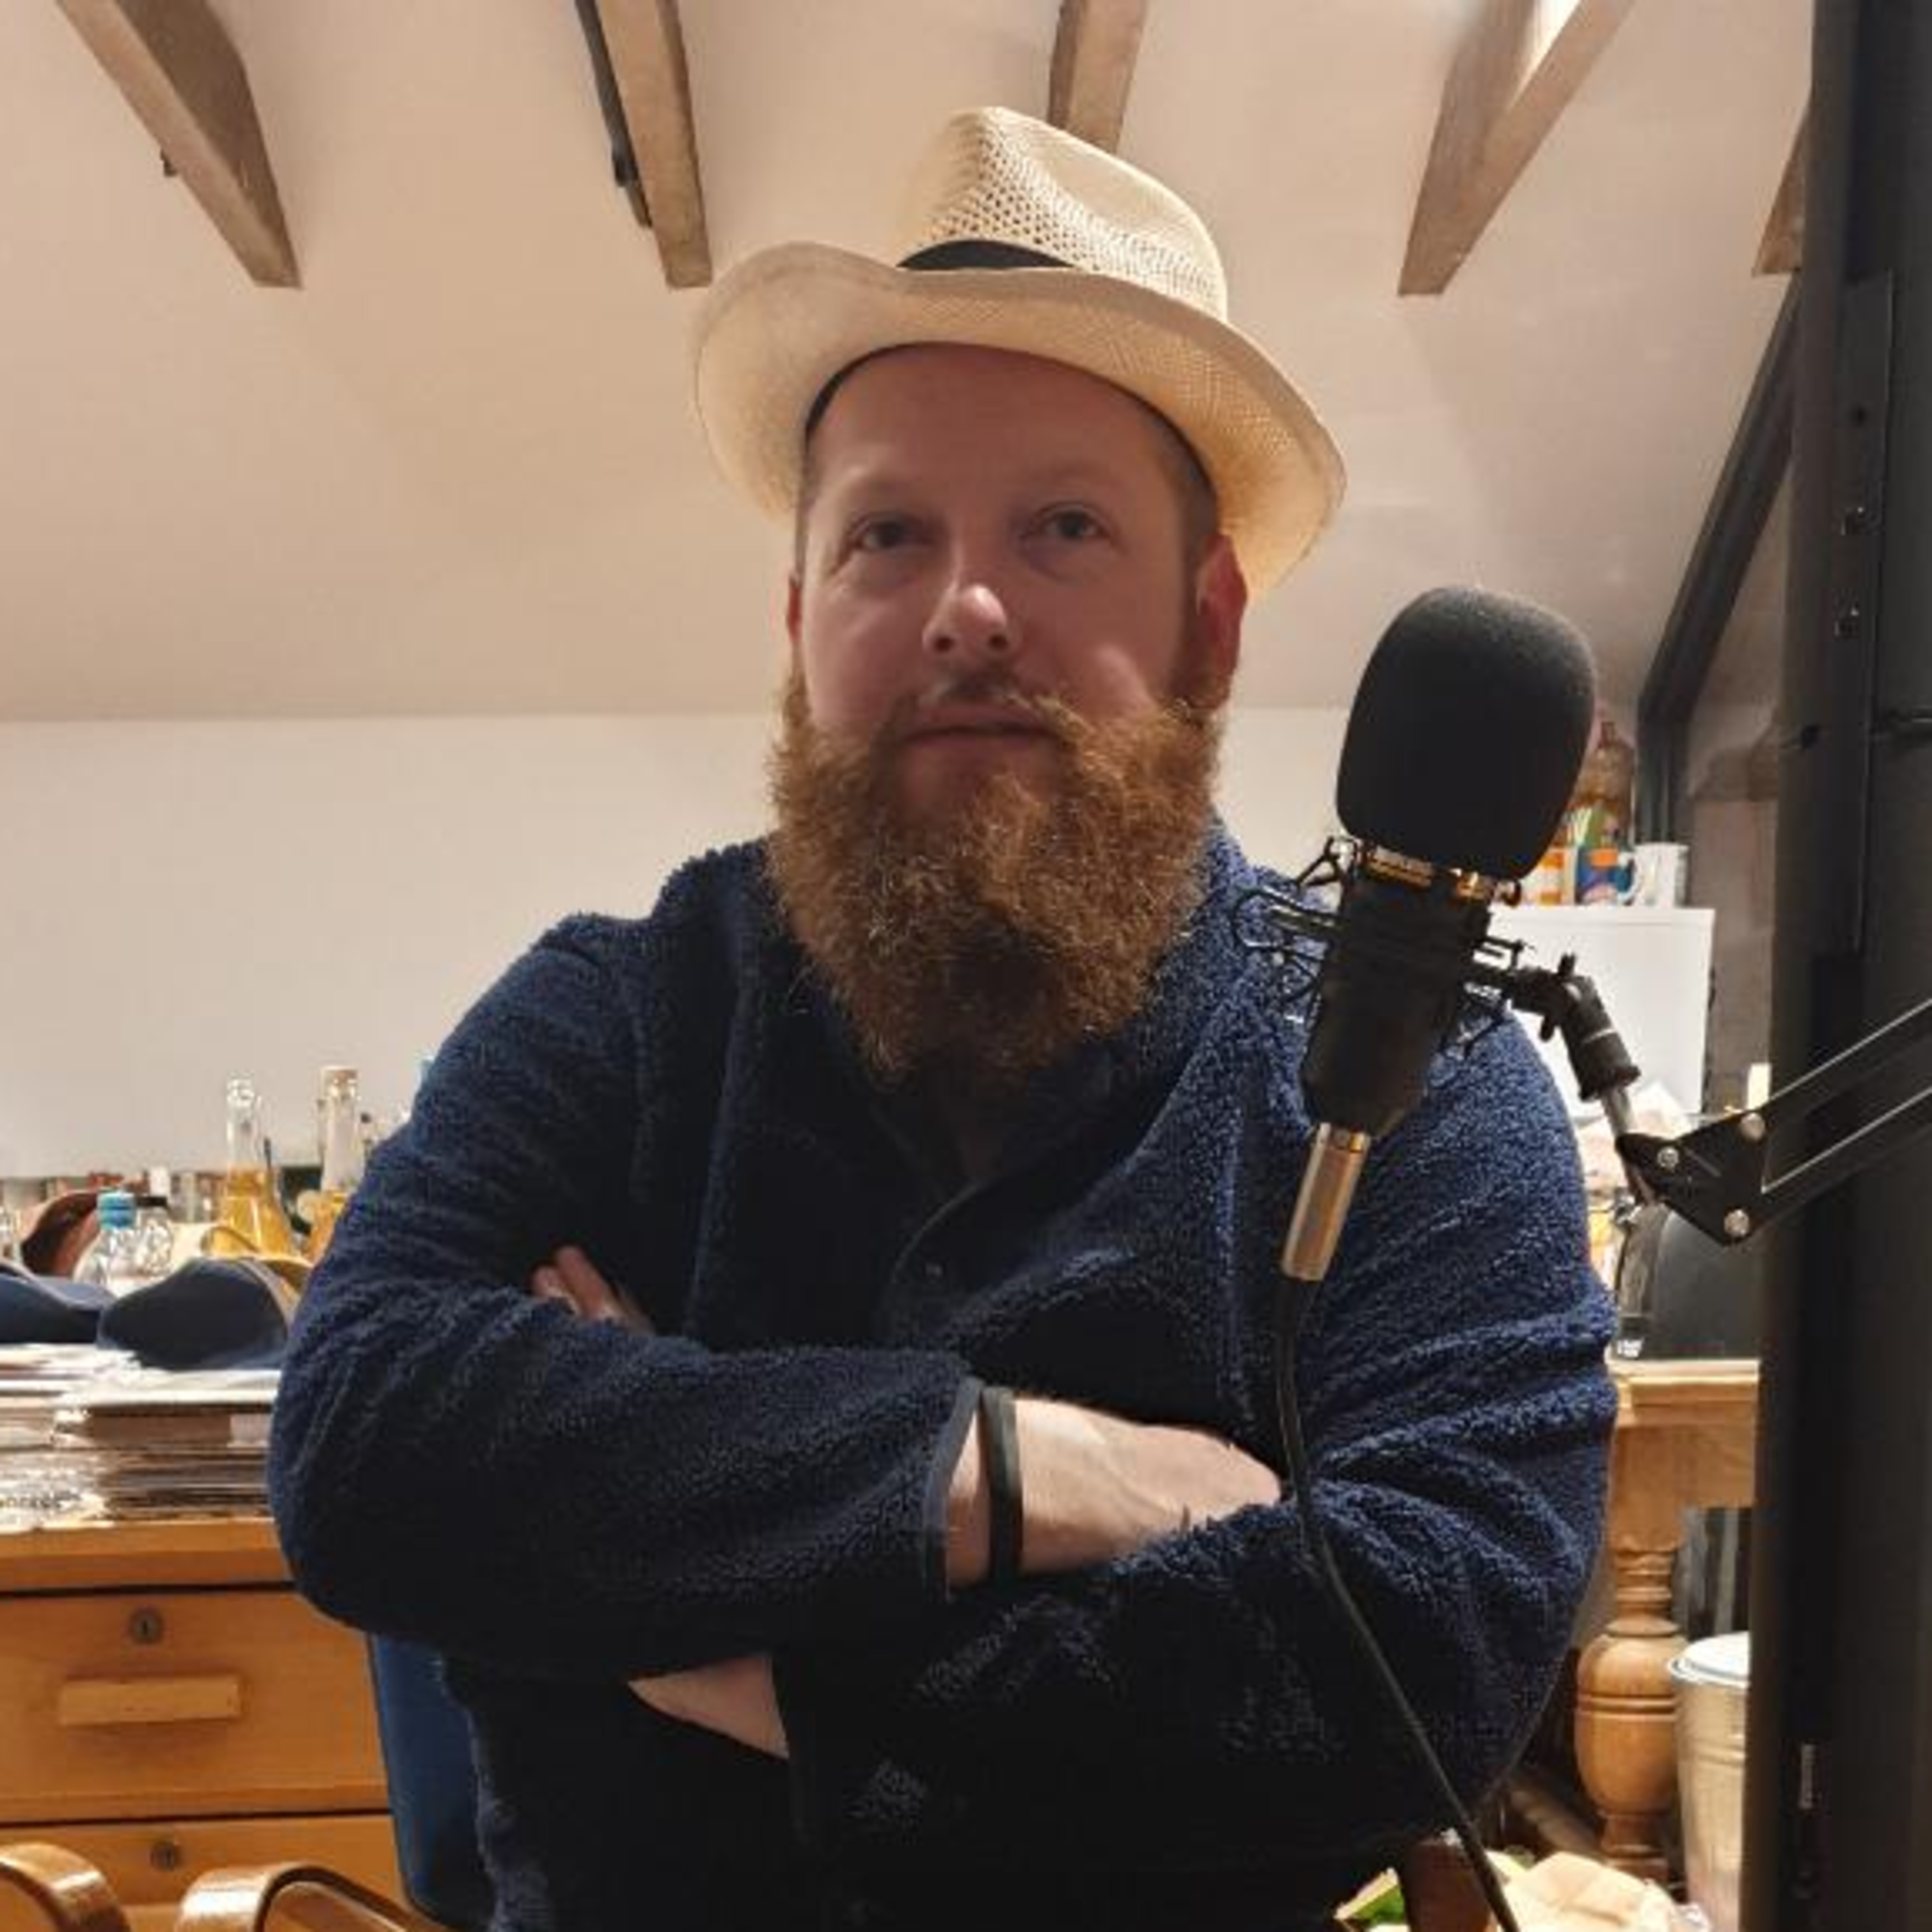 Episode 46 30 33 of 46-30 with James Yorkston, Stephen Marshall and Phill Jupitus, featuring The Stranglers, Ian Dury & The Blockheads, Viking Moses, Brighde Chaimbeul and plenty more